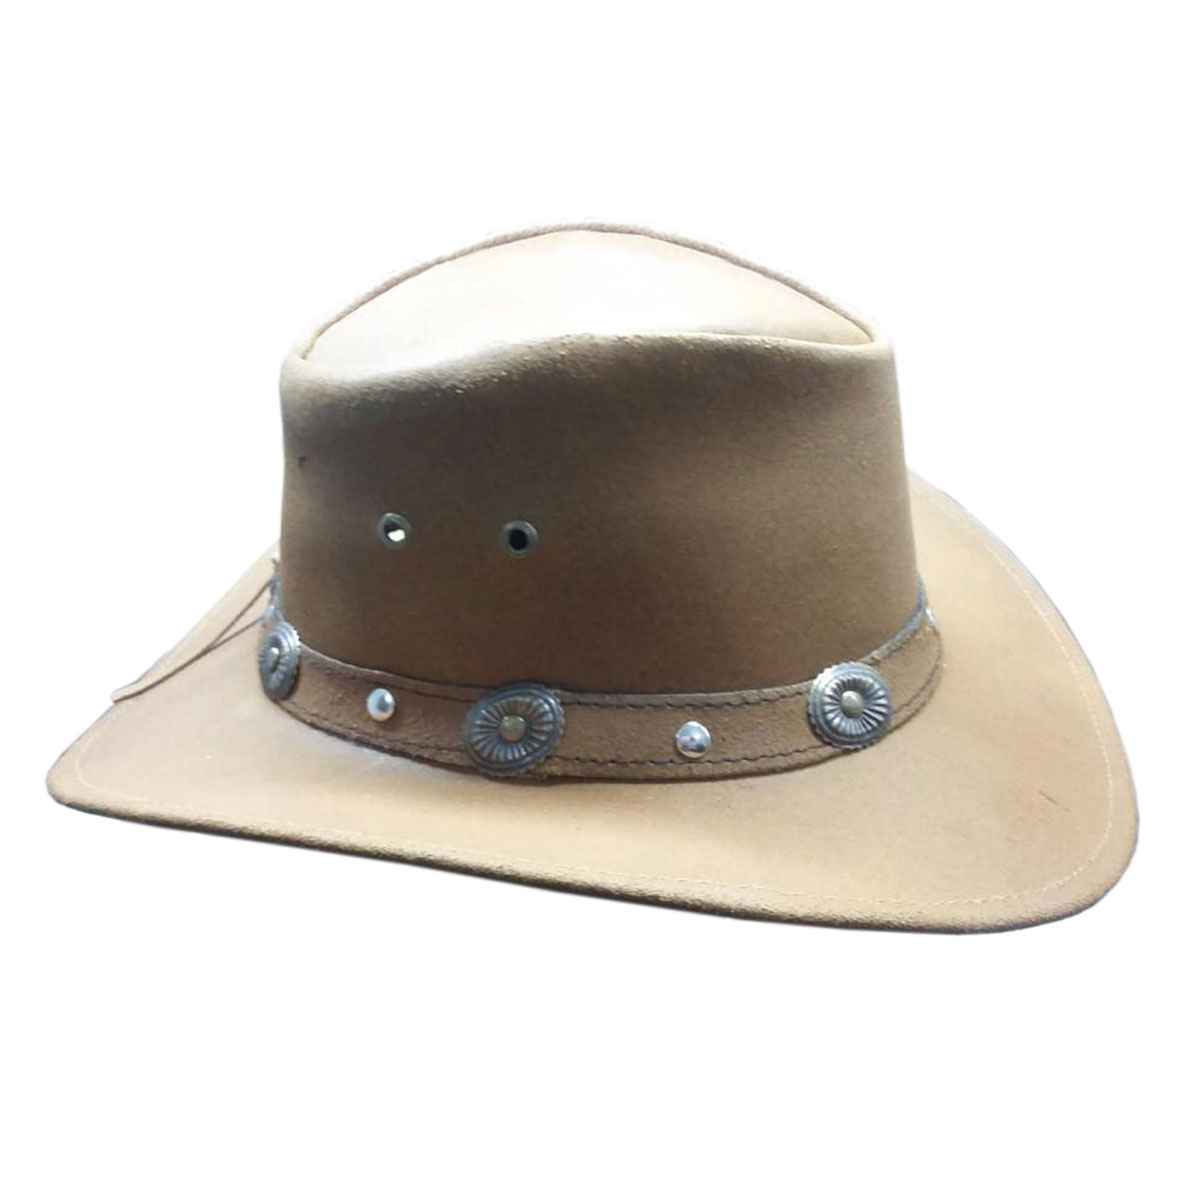 LIGHT BROWN LEATHER HAT